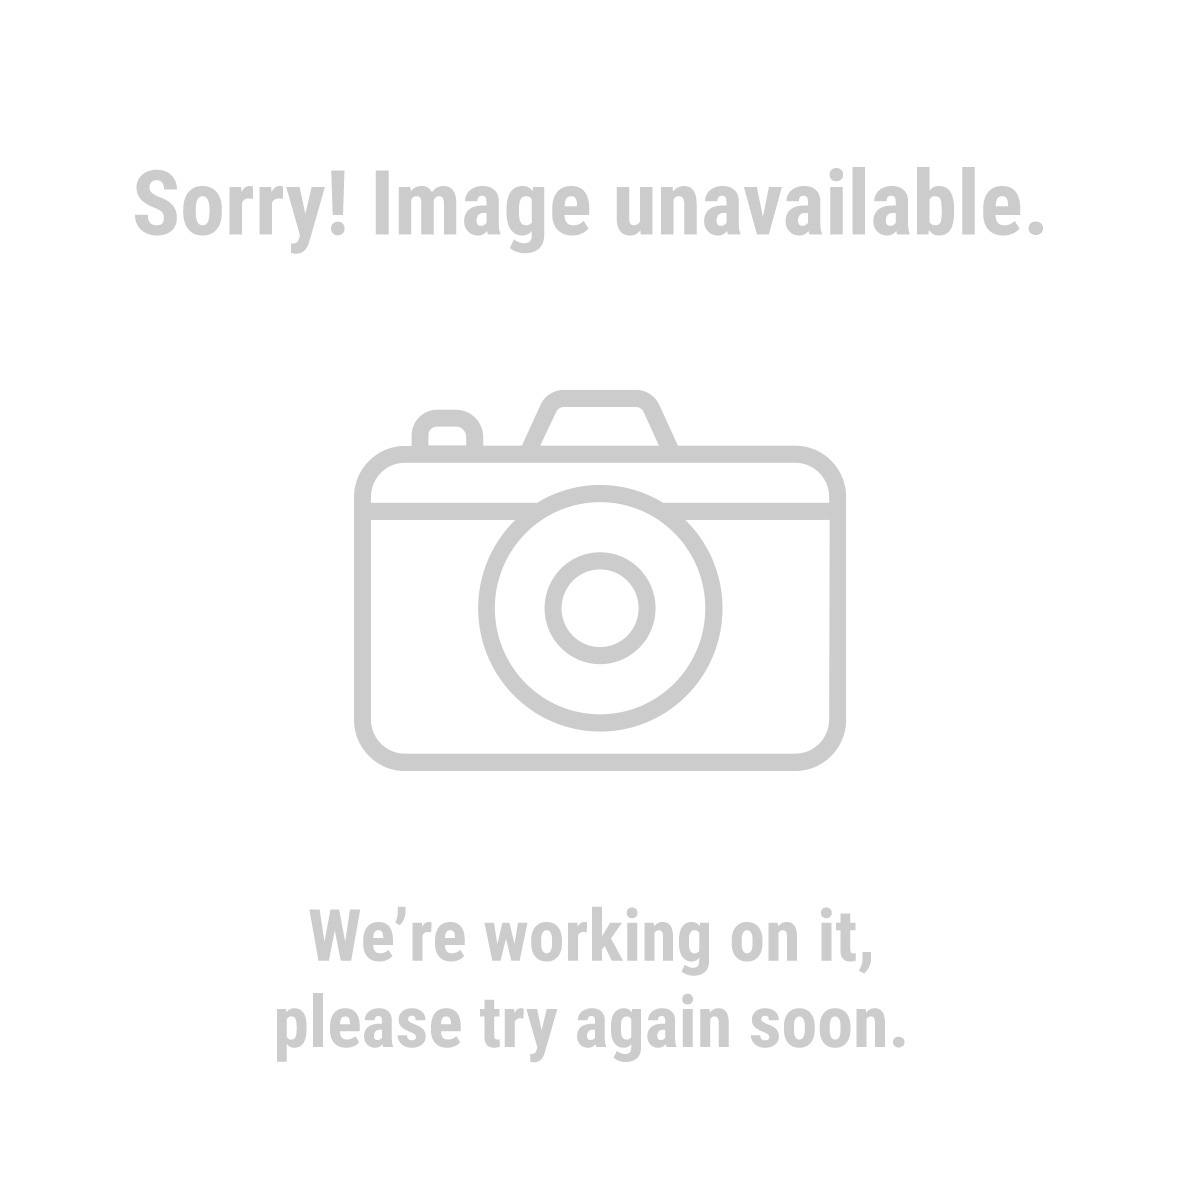 Western Safety 66610 Split Leather Work Glove